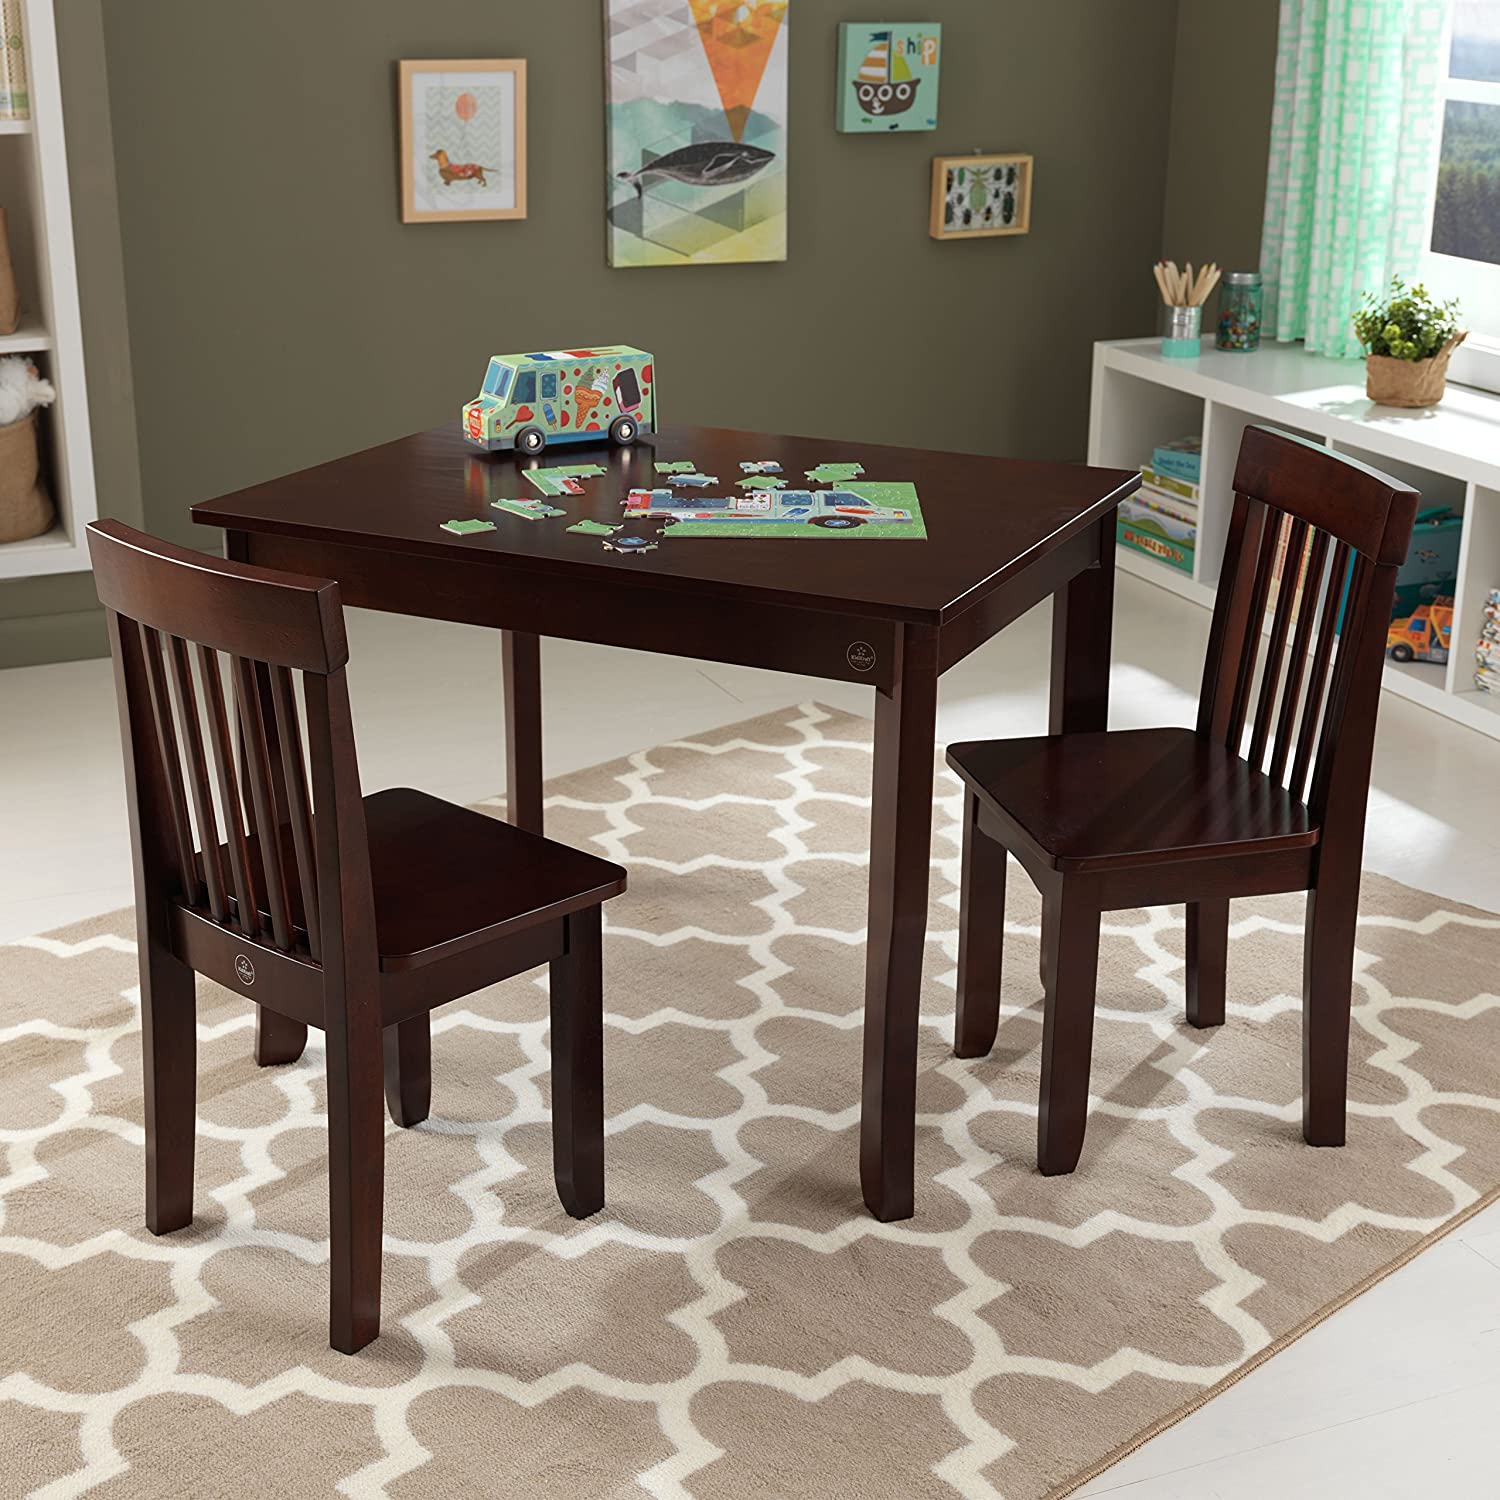 Amazon.com KidKraft Avalon Table II \u0026 2 Chairs Set Espresso Toys \u0026 Games & Amazon.com: KidKraft Avalon Table II \u0026 2 Chairs Set Espresso: Toys ...